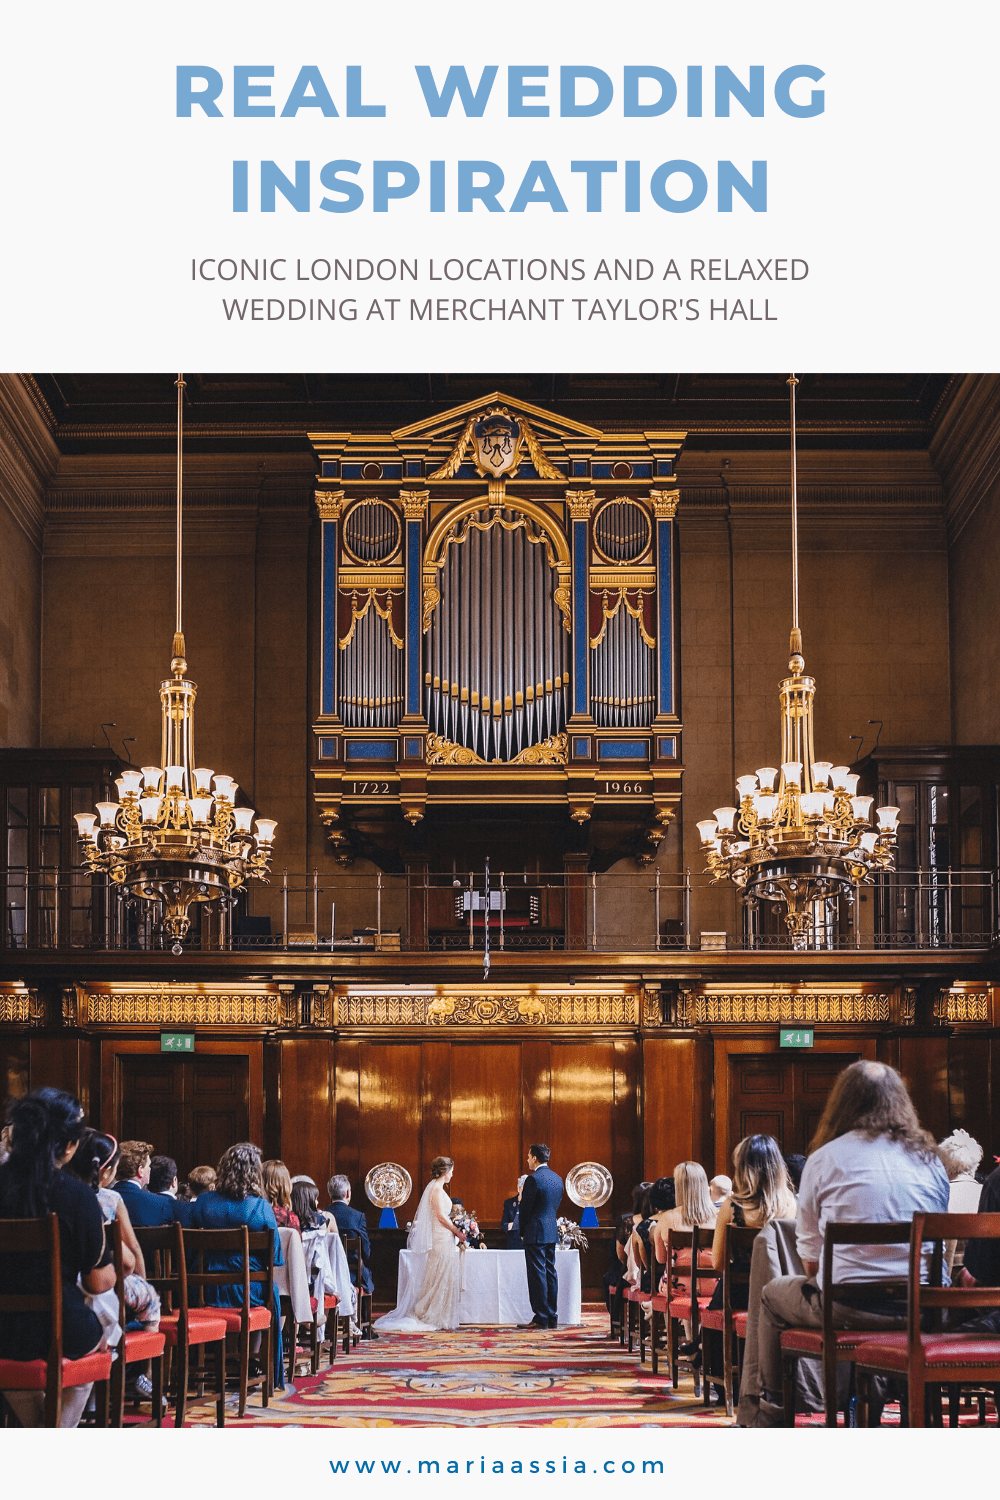 Iconic London Locations And A Relaxed Wedding at London's Merchant Taylor's Hall